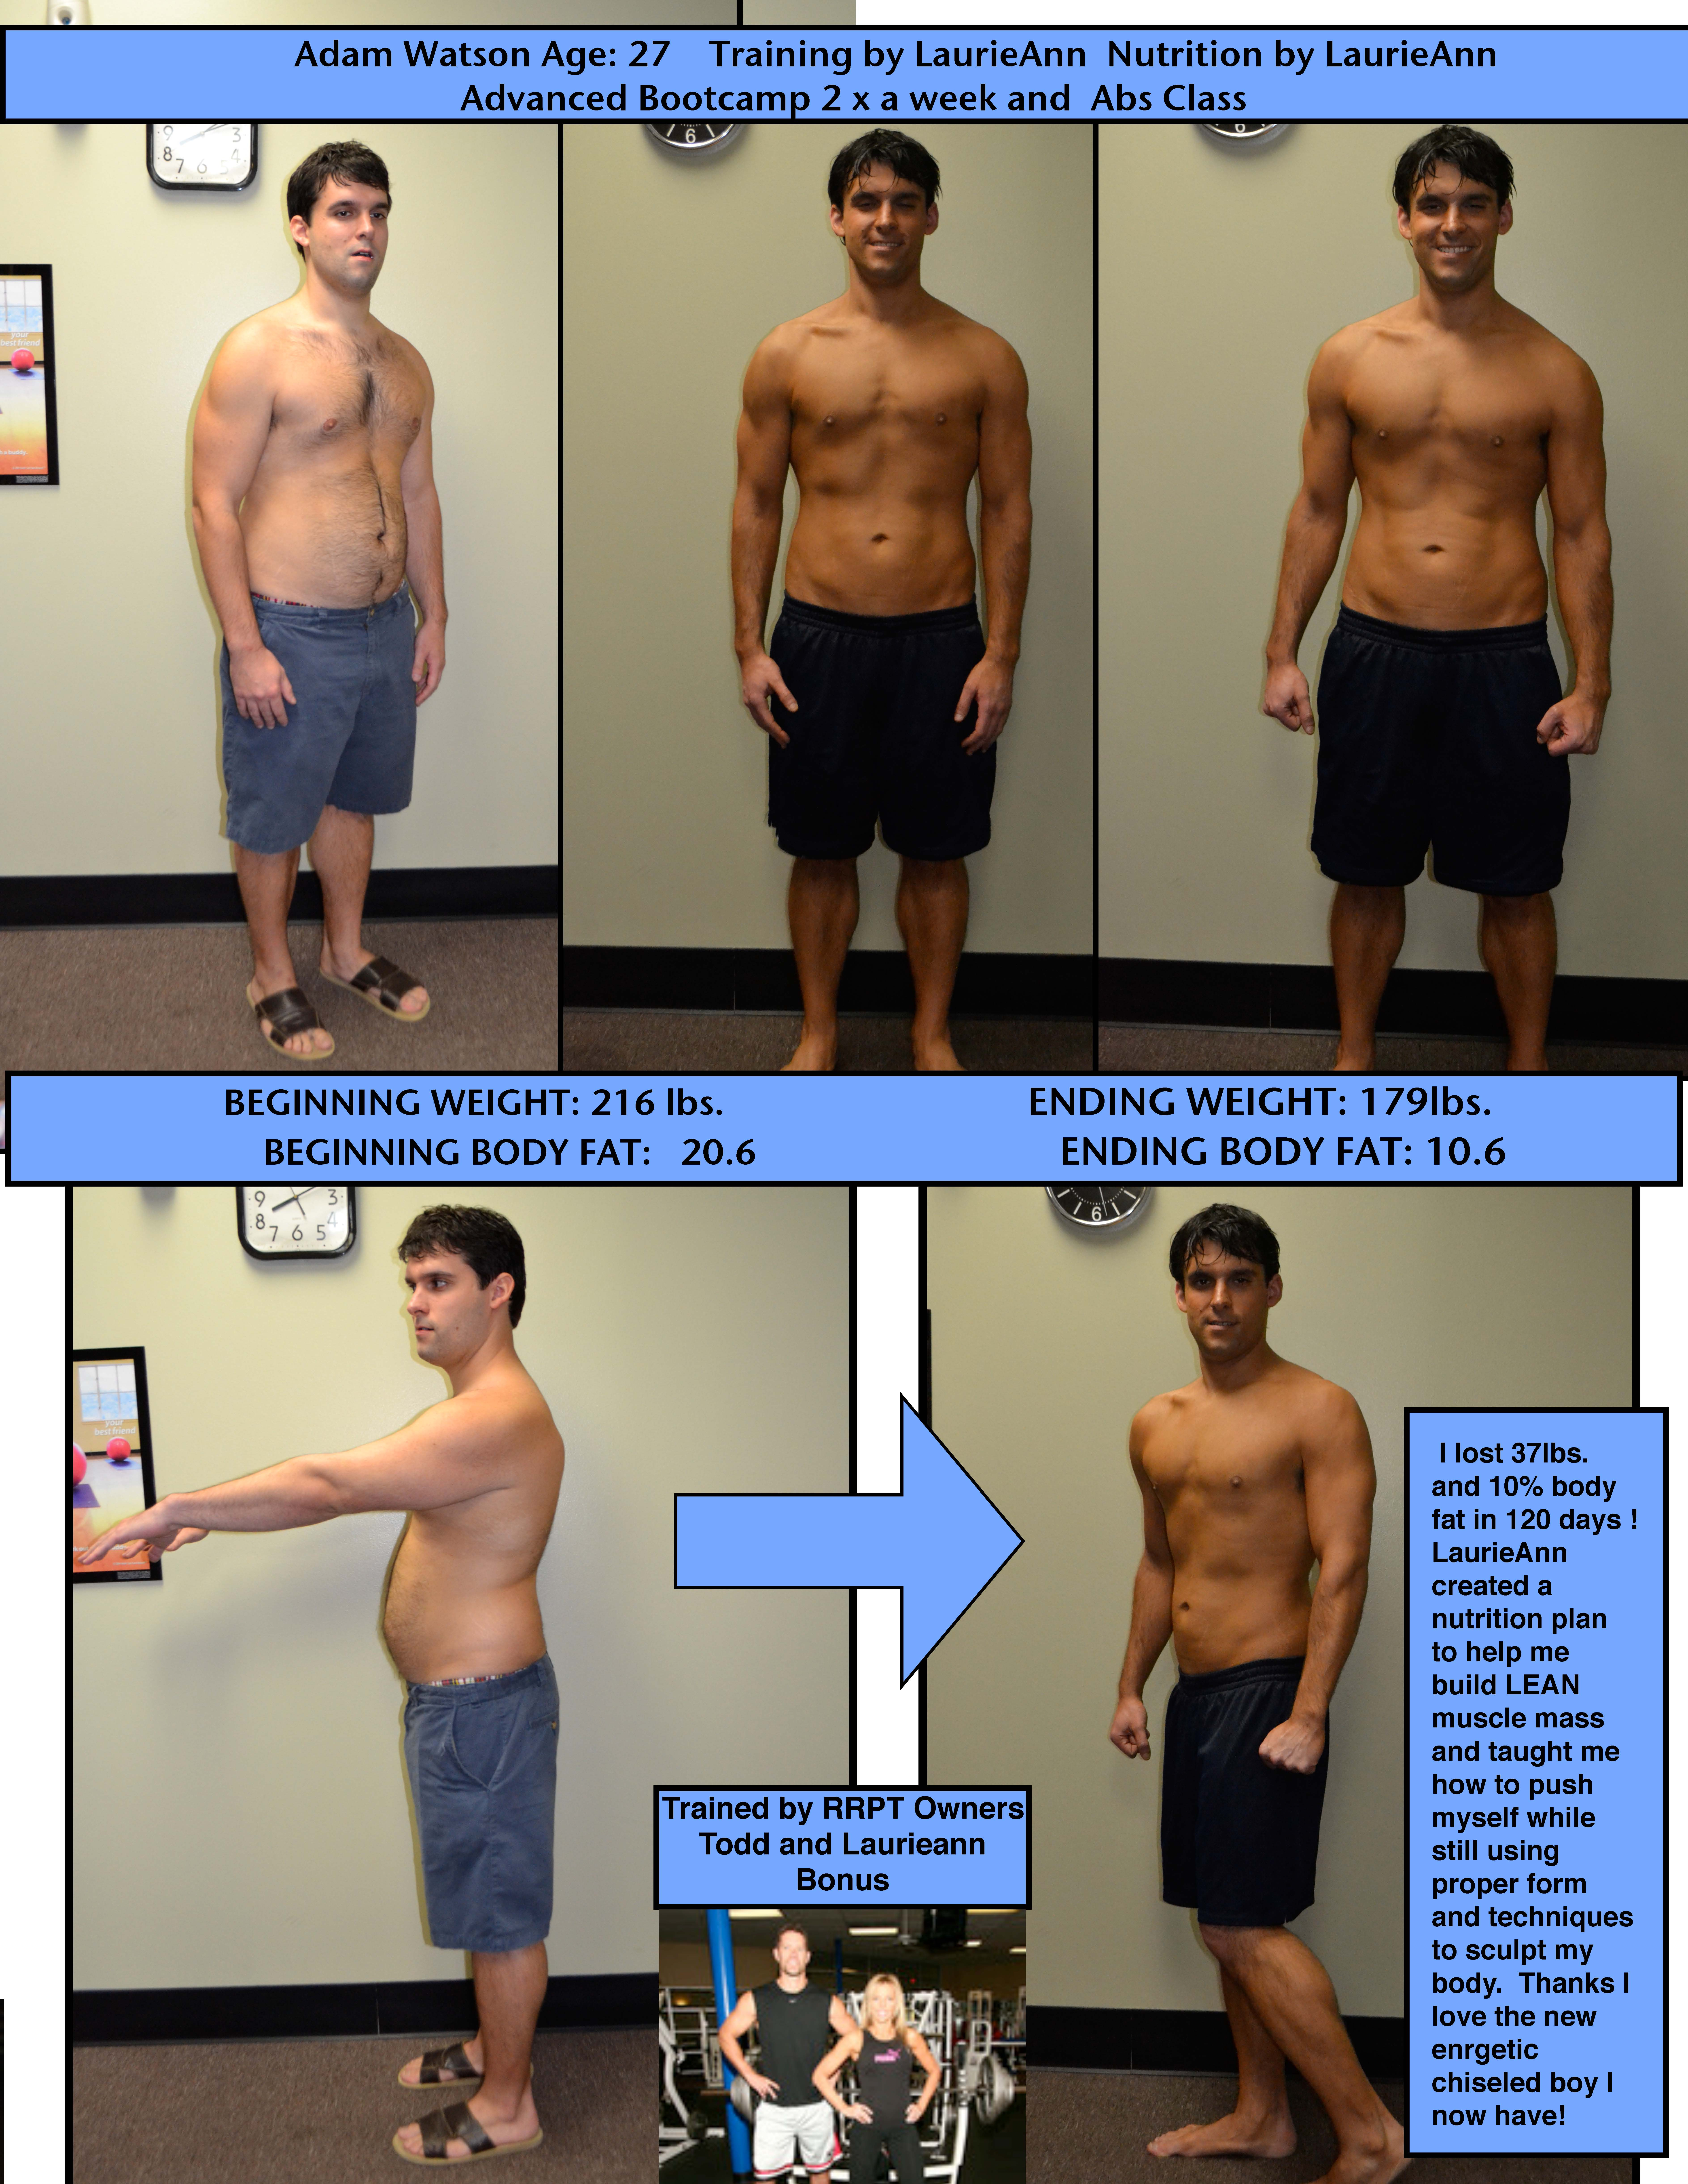 How lose weight fast and safely